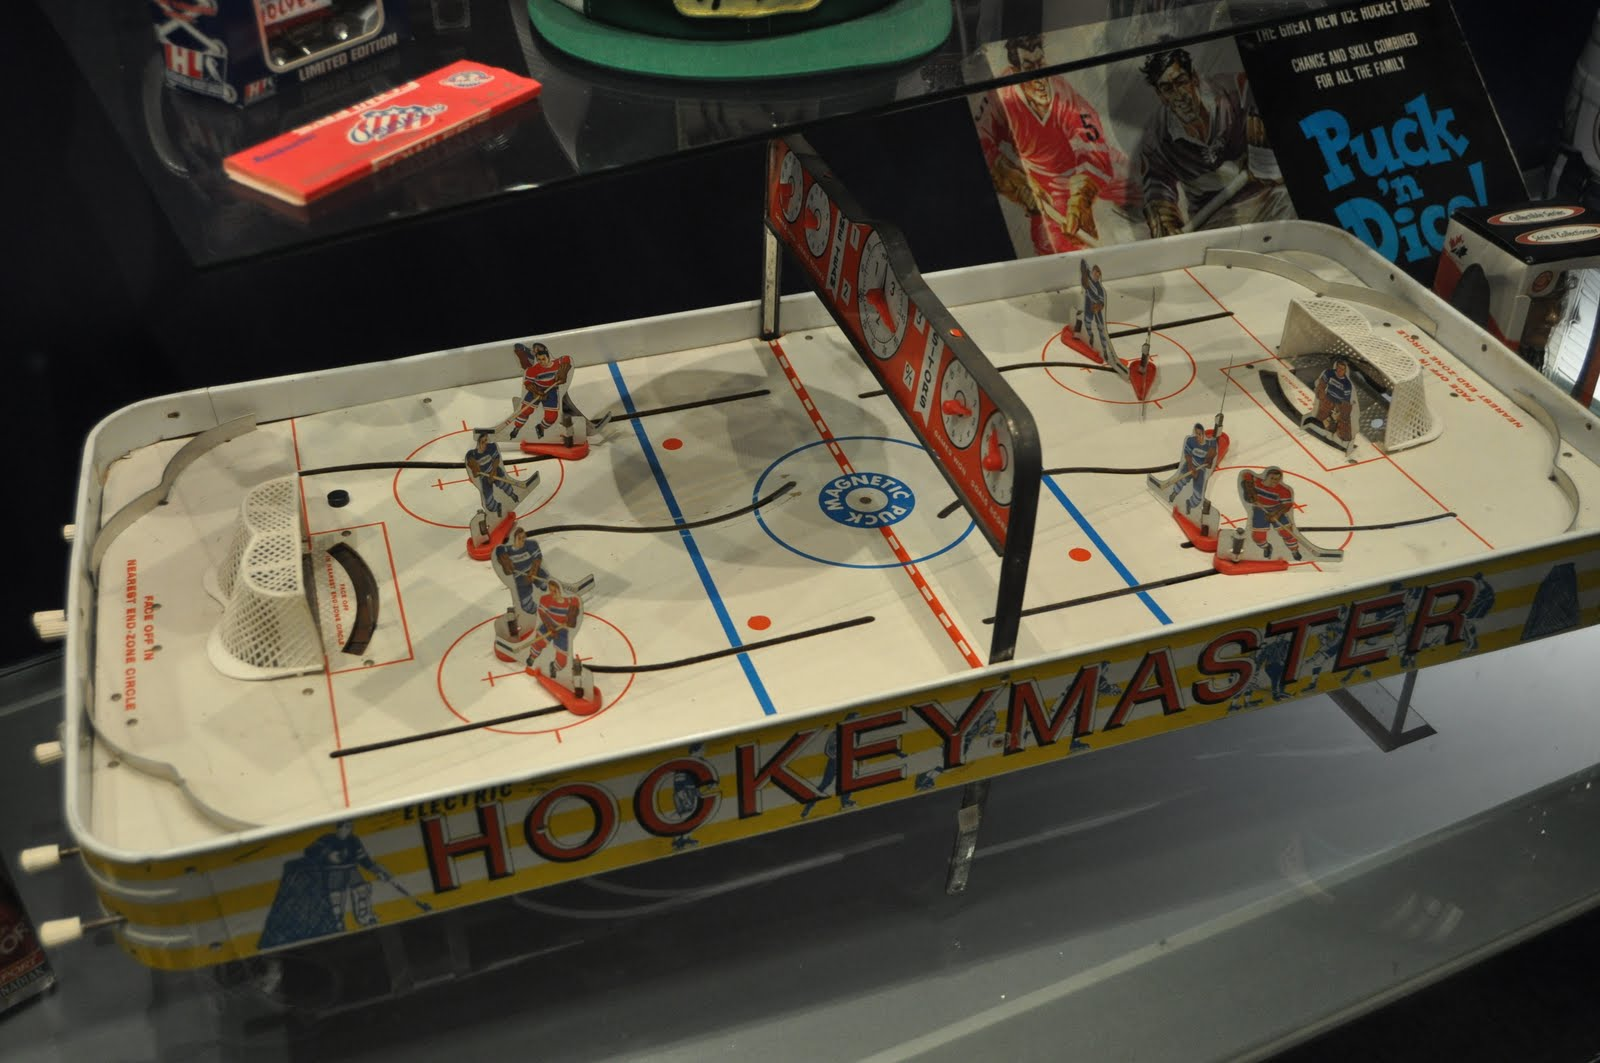 1980 usa hockey team essay Had 1980 us hockey team lost to finland, soviets would have won us olympic hockey team 1980 on ice, when the united states men's hockey team shocked the.